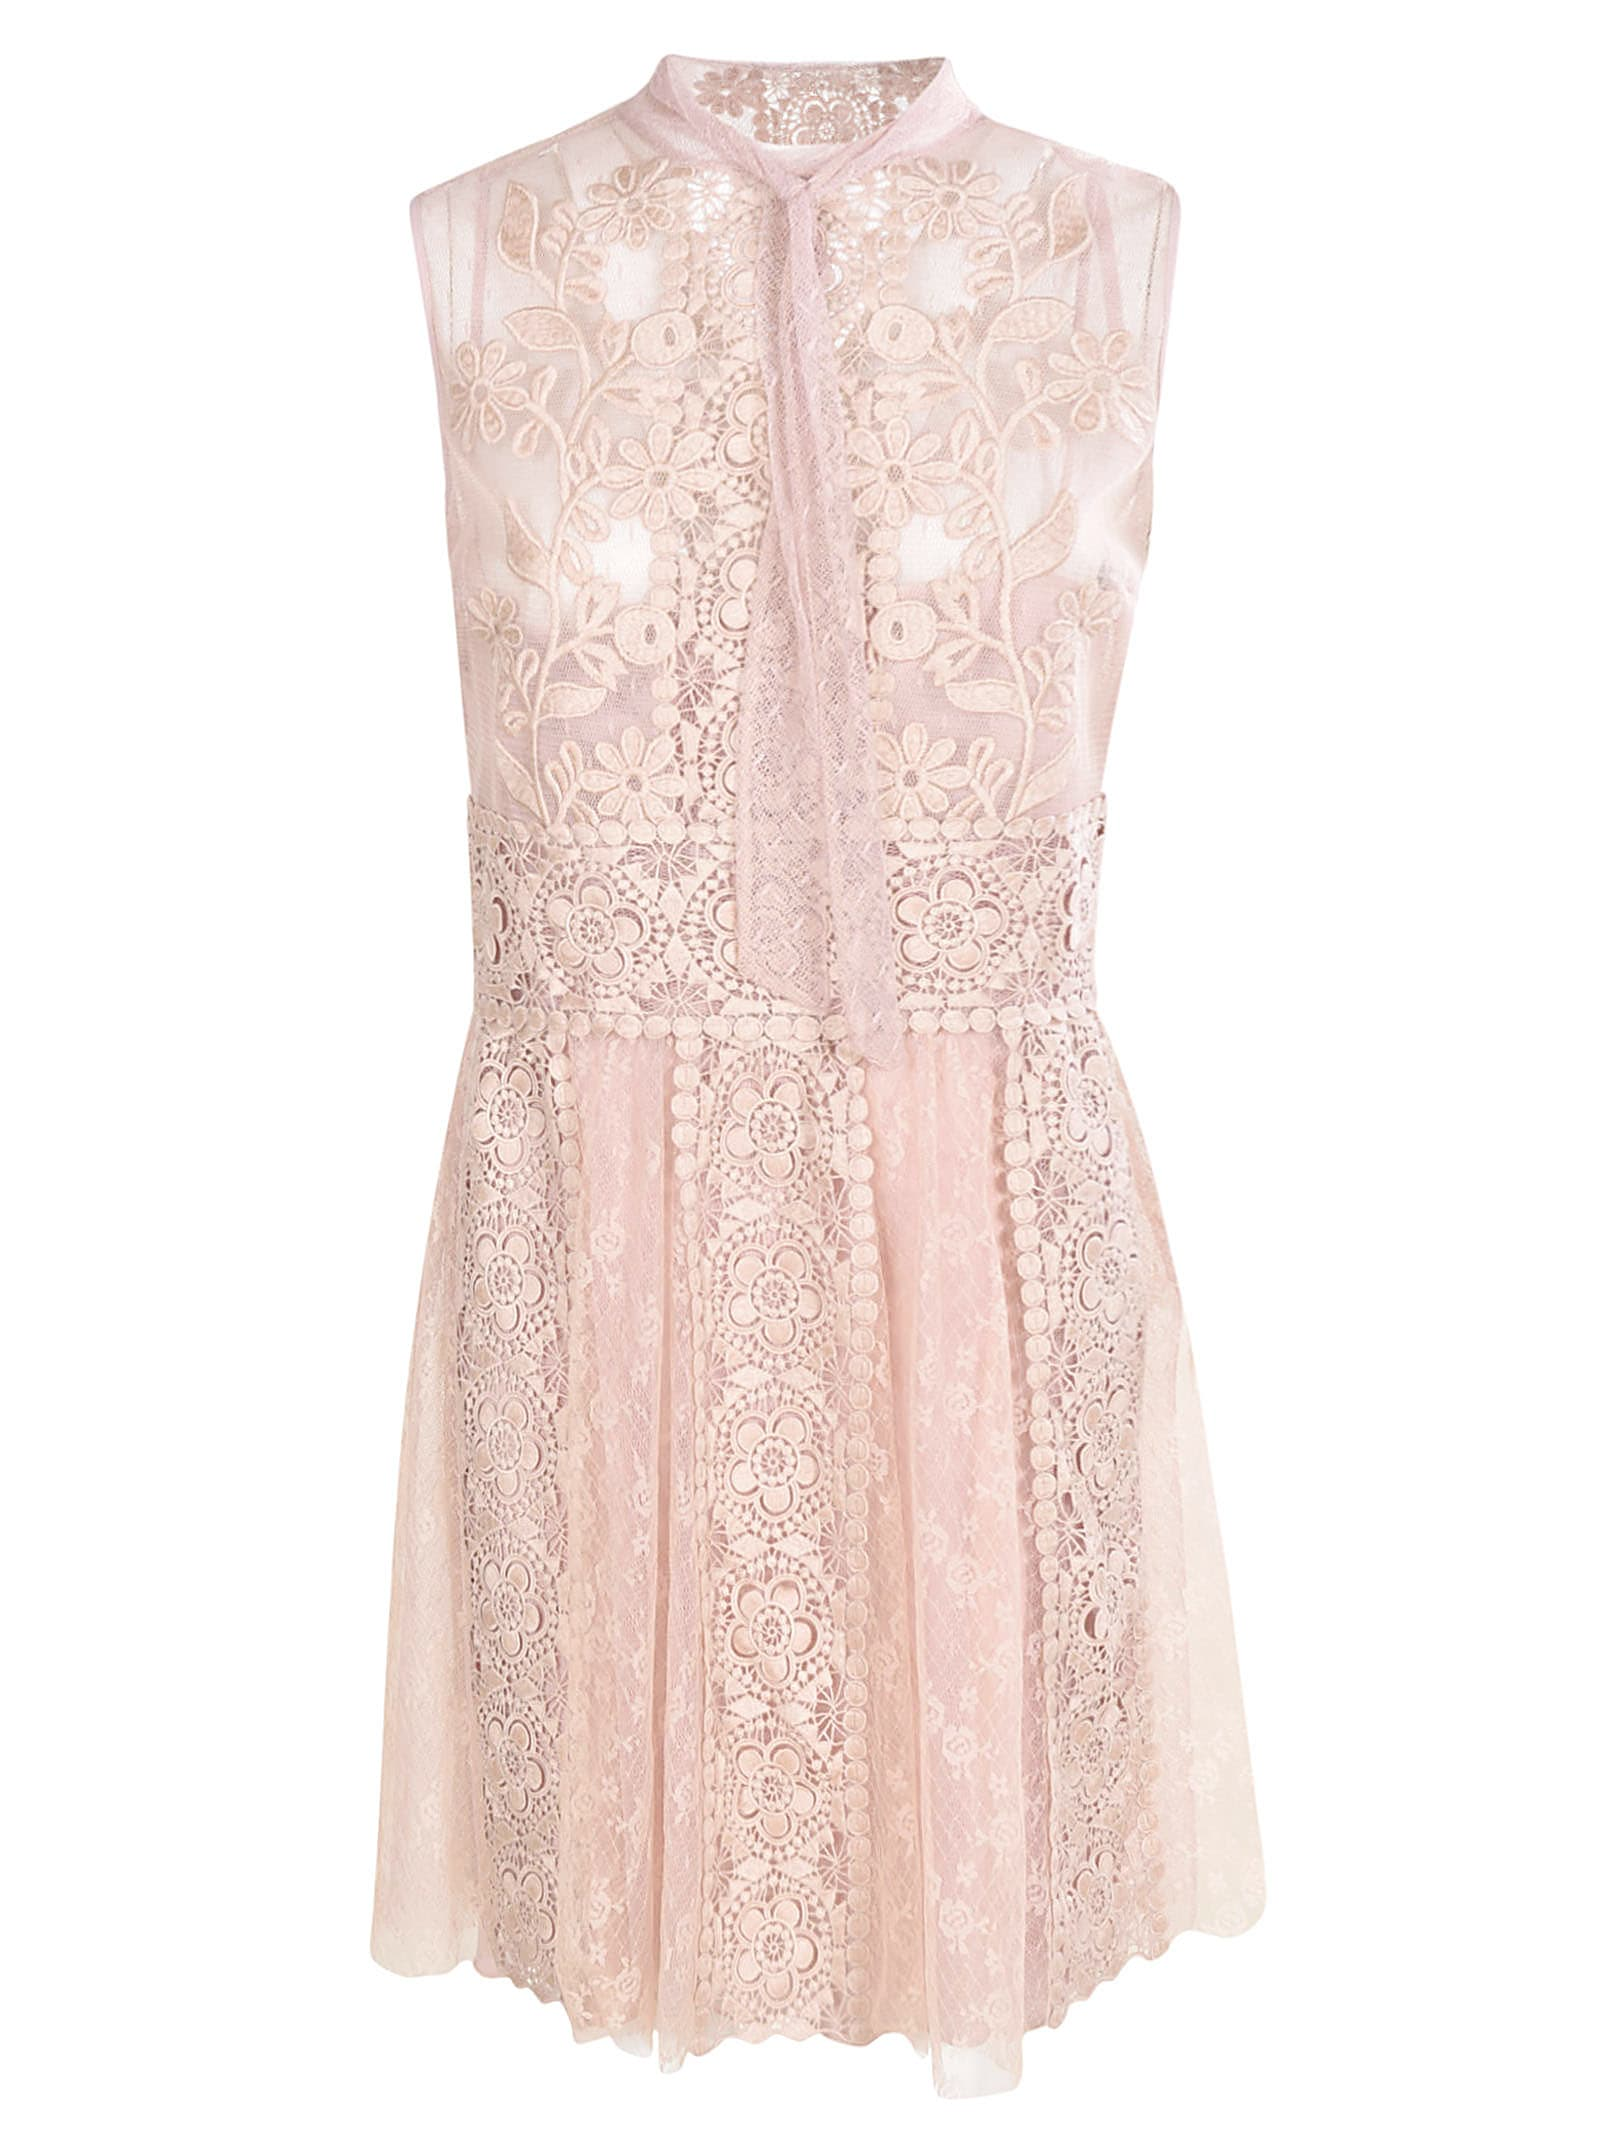 Buy RED Valentino Lace Sleeveless Dress online, shop RED Valentino with free shipping